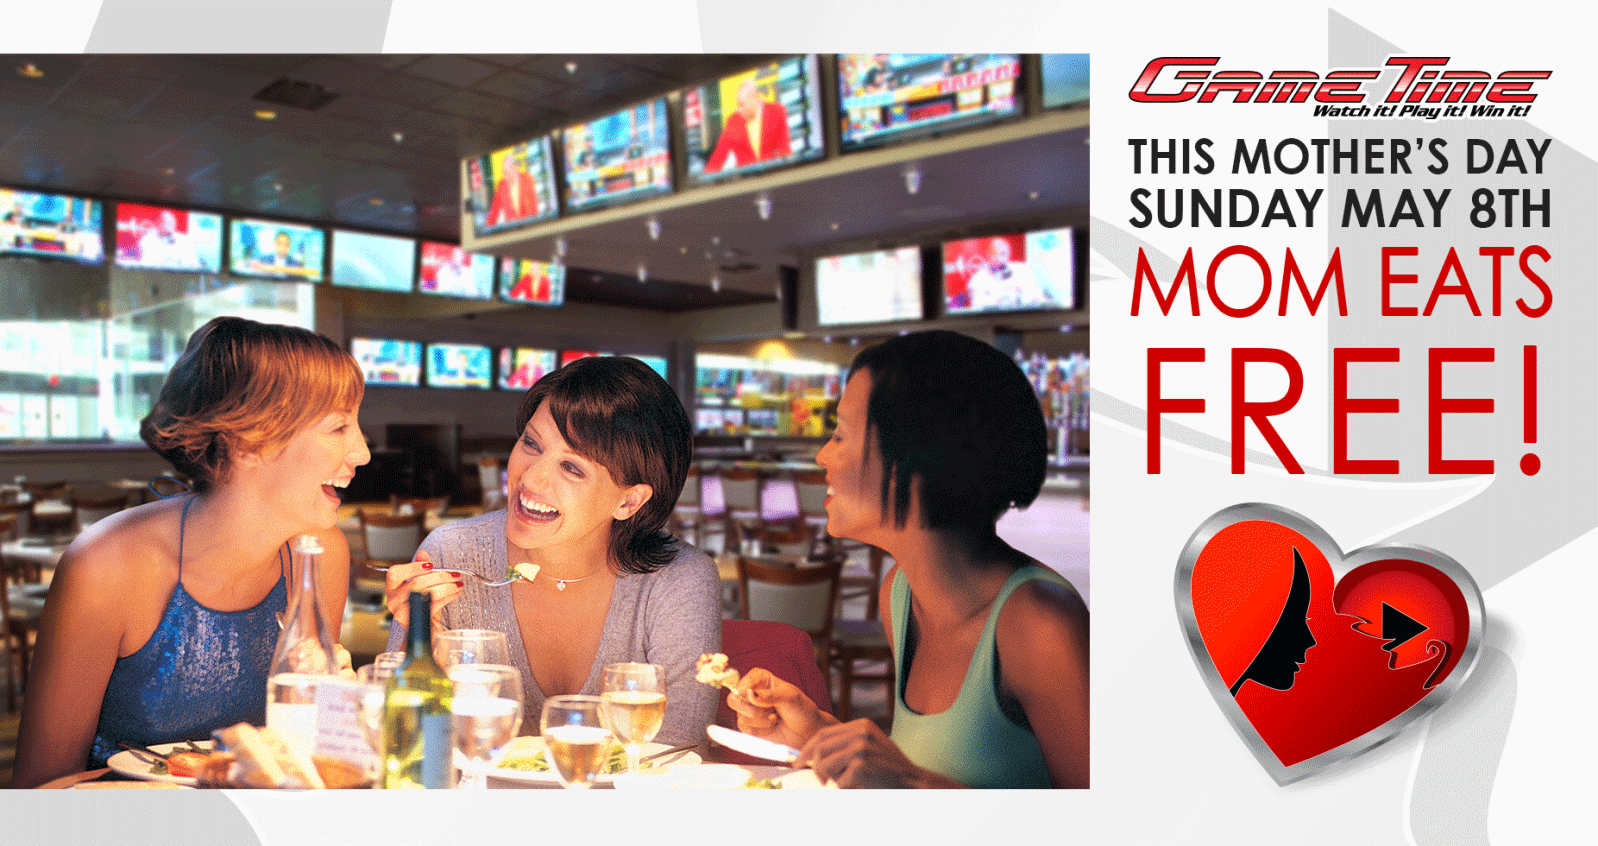 Celebrate Mothers day in Miami at GameTime